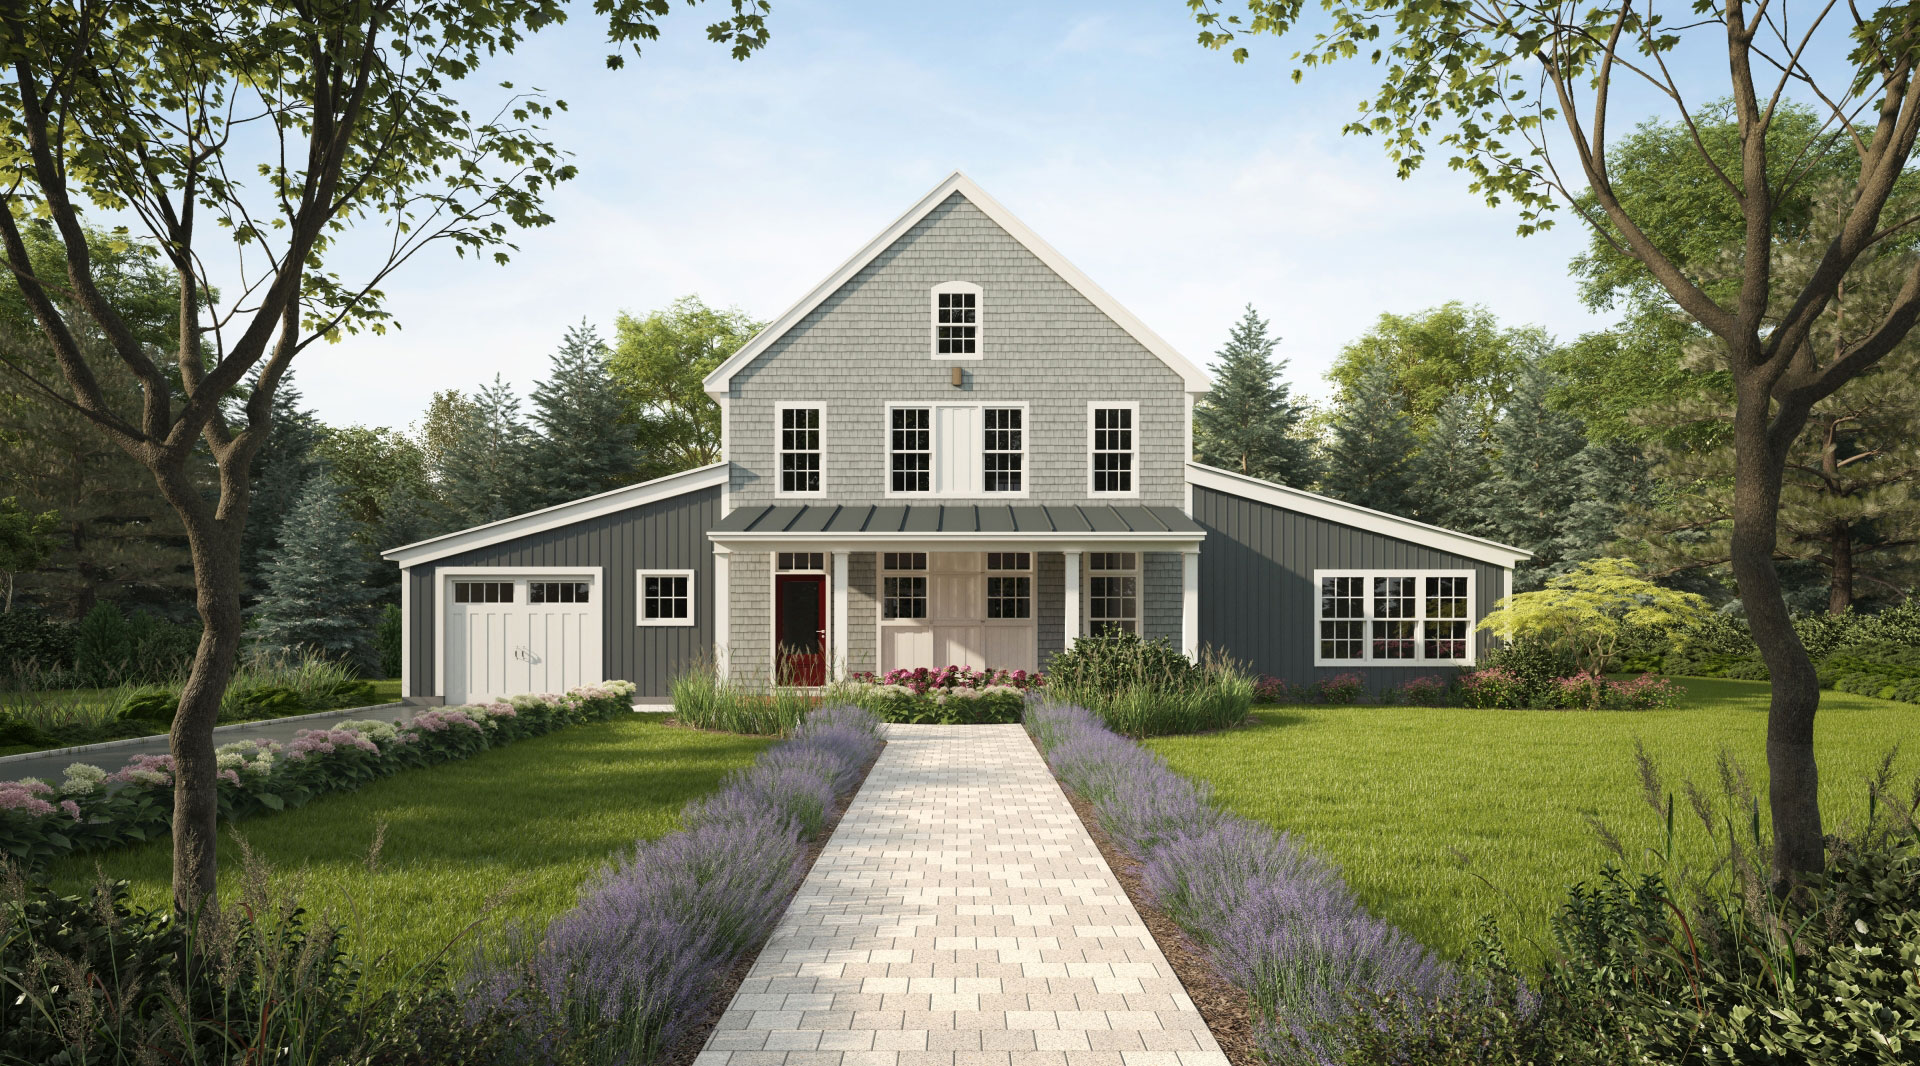 Profile Homes - Converted Barn Exterior Front © 2018 Profile Homes